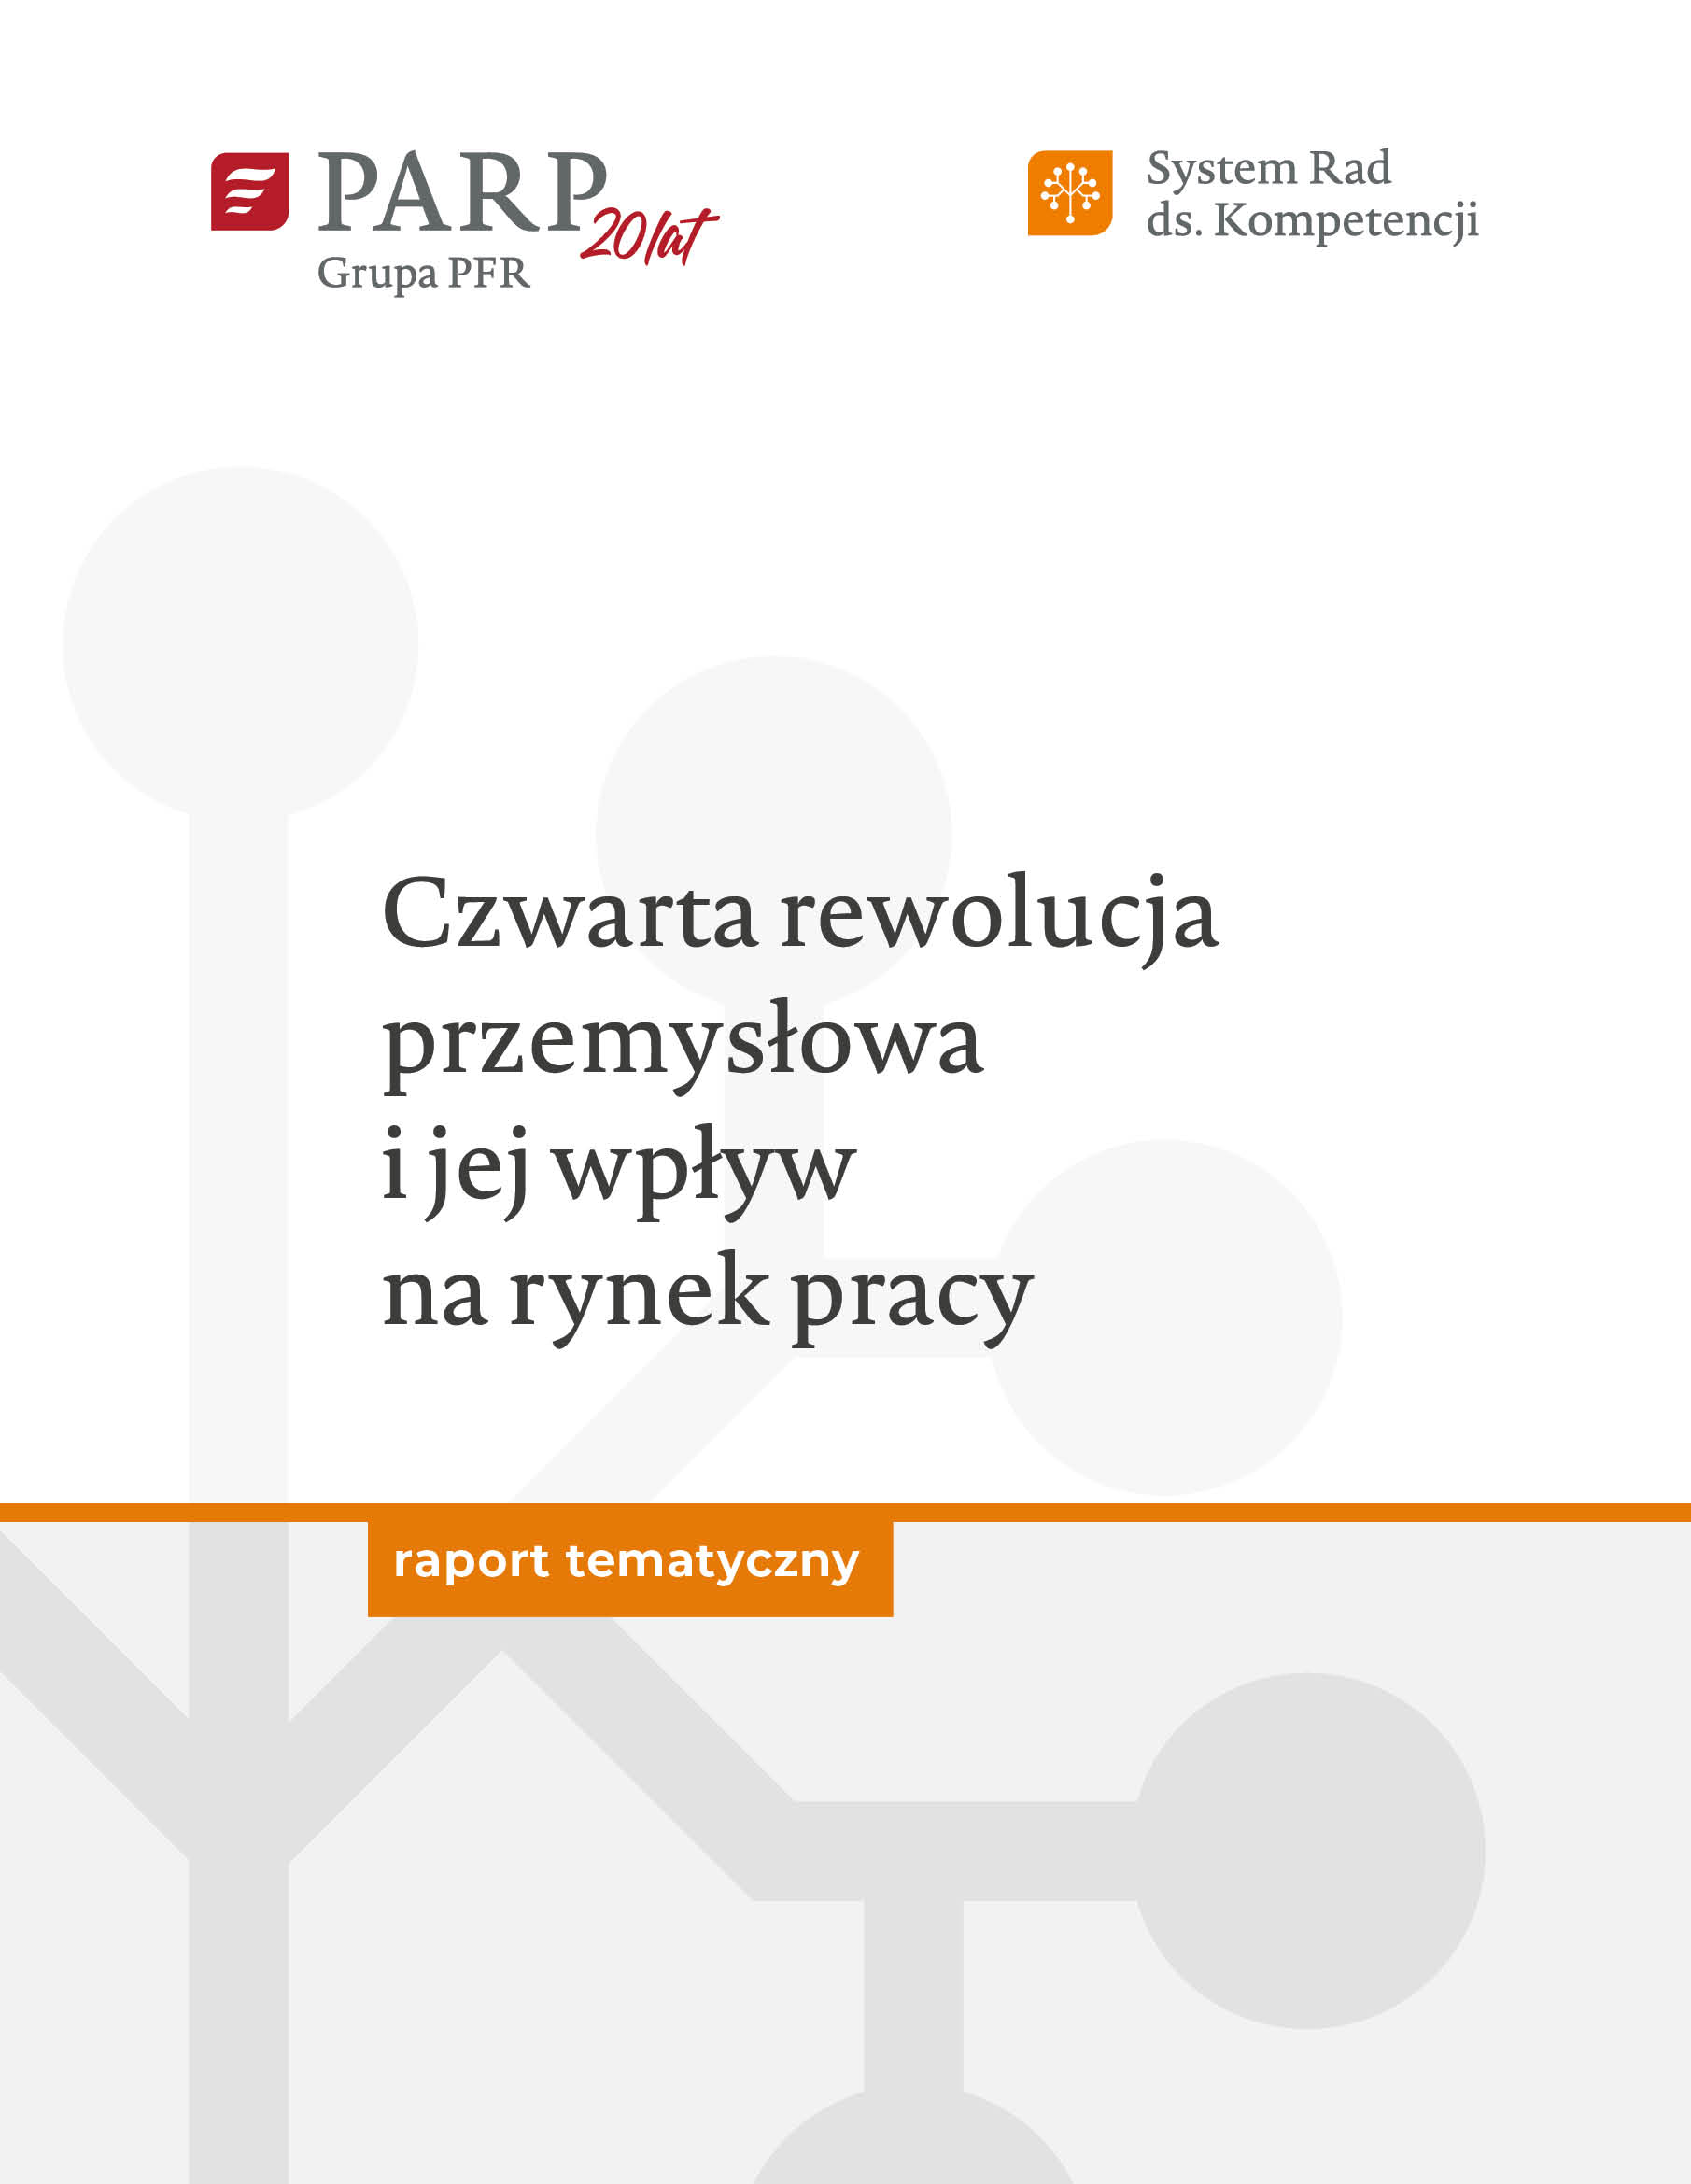 Czwarta rewolucja przemysłowa i jej wpływ na rynek pracy